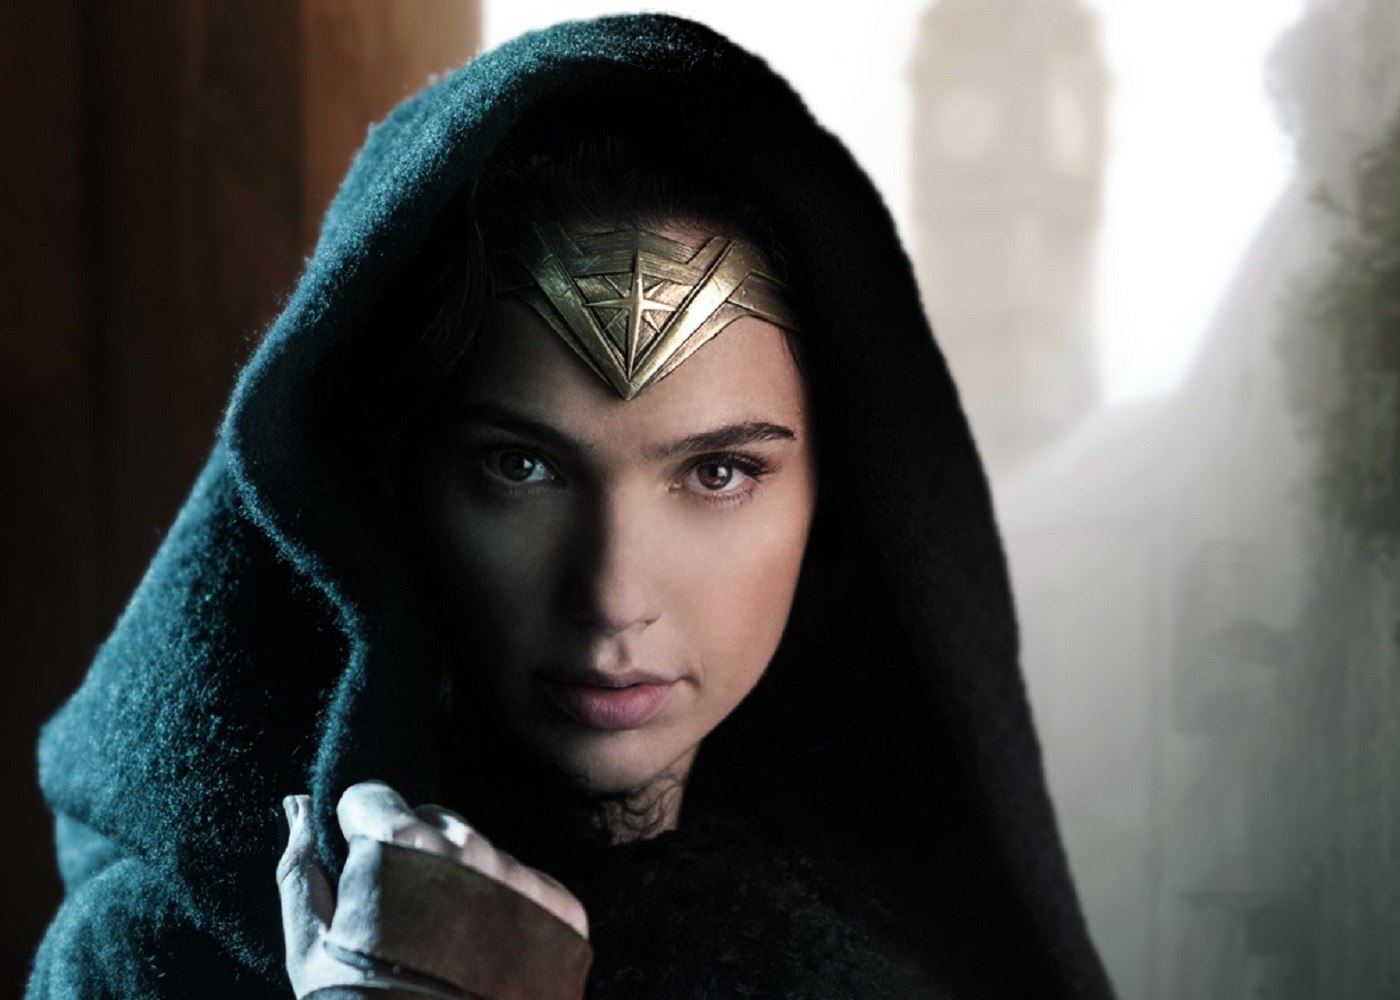 Wonder Woman Beats Iron Man for Fifth Highest Grossing Superhero